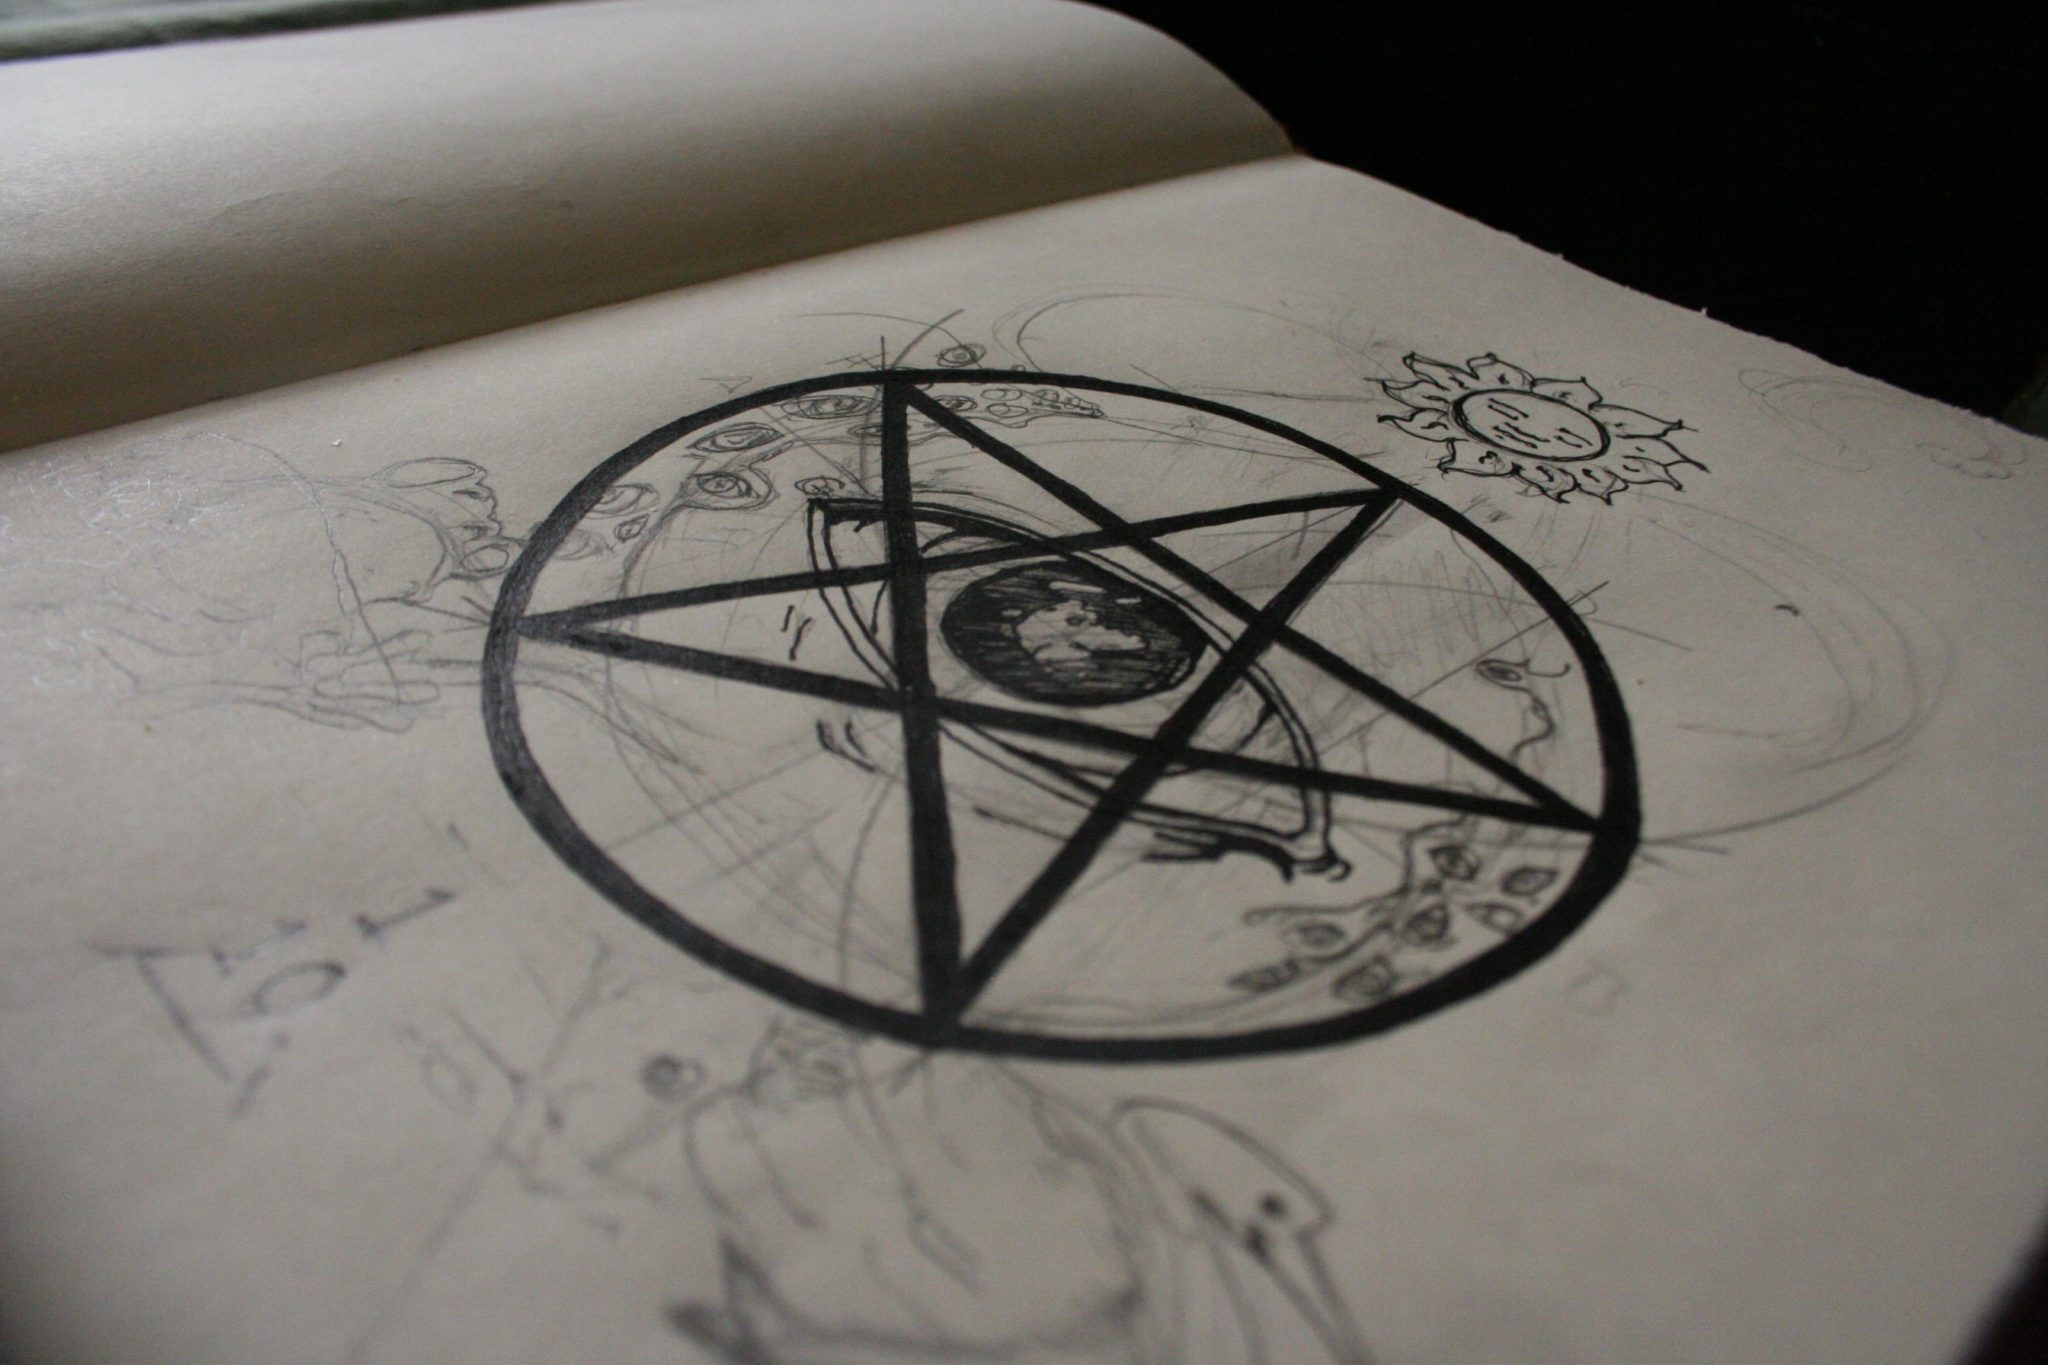 Sketchbook magick drawing eye of providence in pentagram drawing by Scott Myst of Closet of Mysteries